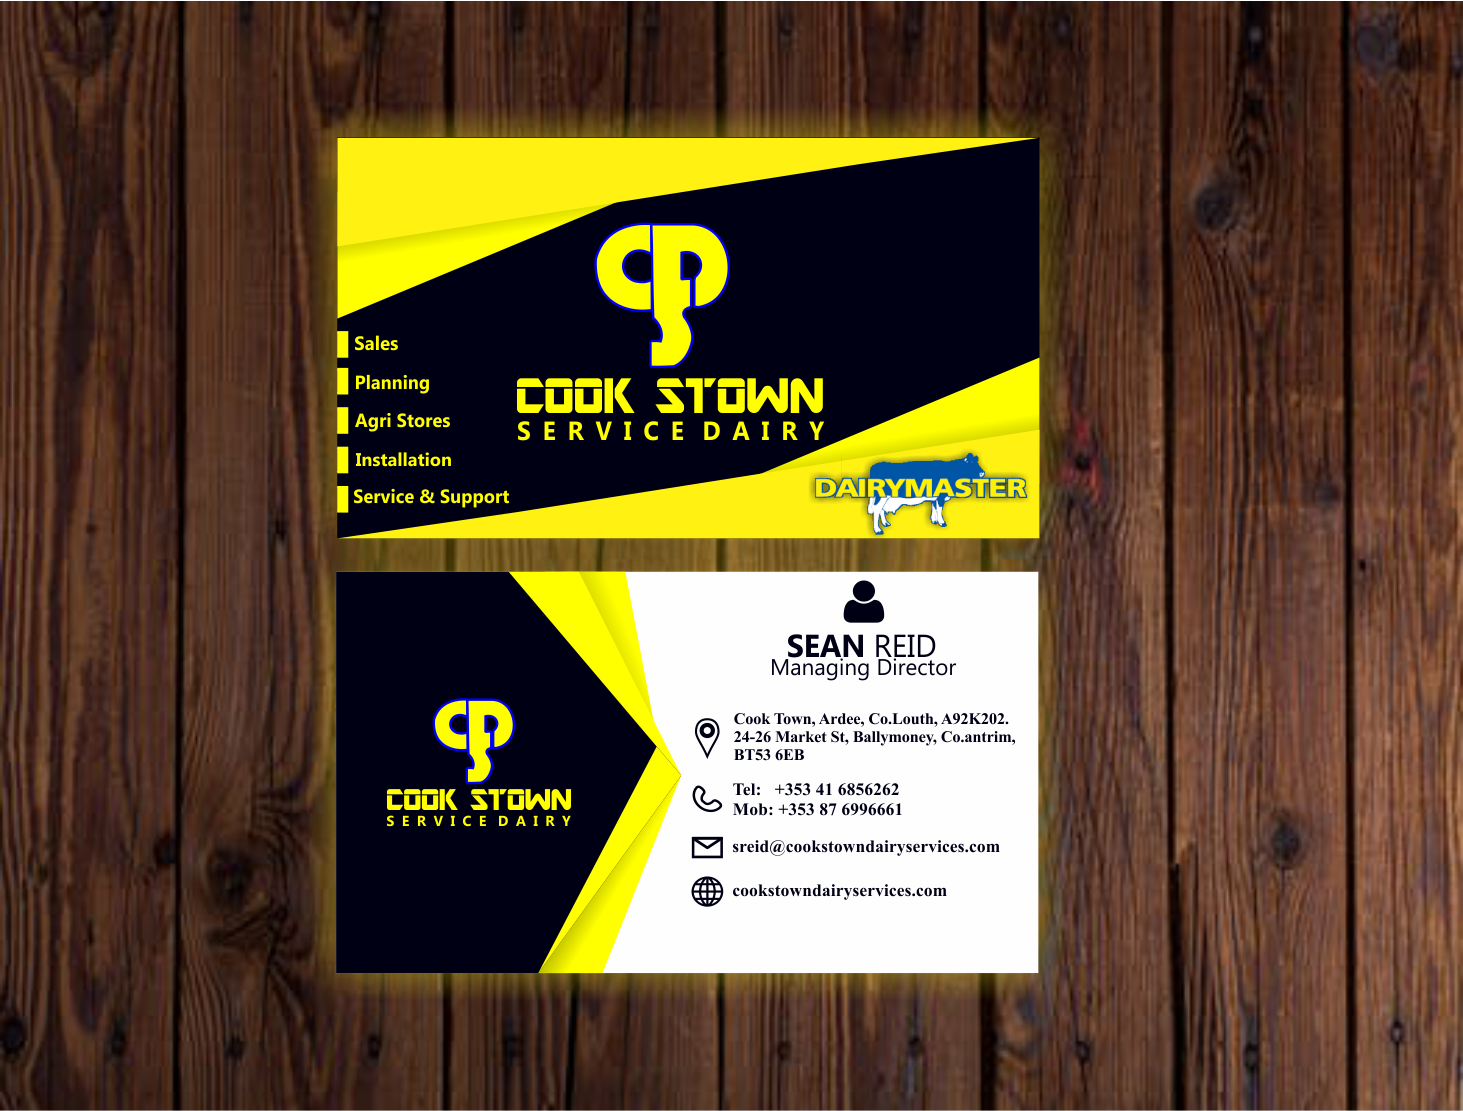 Elegant playful business card design for cookstown dairy services business card design by ace godwin for cookstown dairy services design 18479558 reheart Images